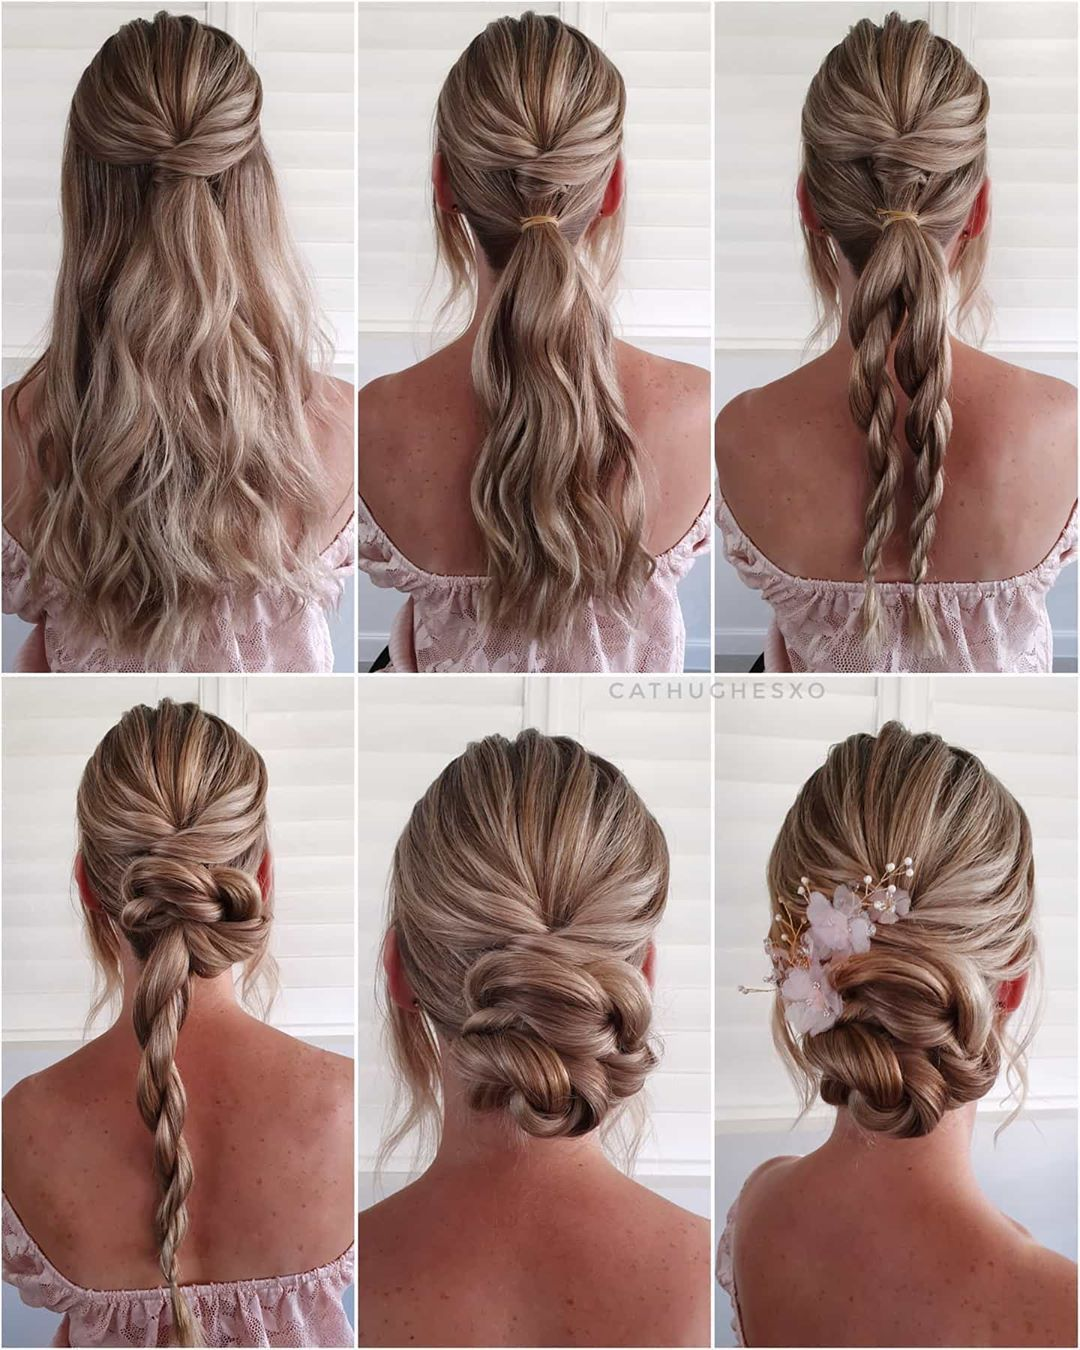 Simple And Pretty Diy Updo Braided Hairstyle Tutorials For Wedding Guest Braided Hairstyles For Wedding Updo Hairstyles Tutorials Hair Styles